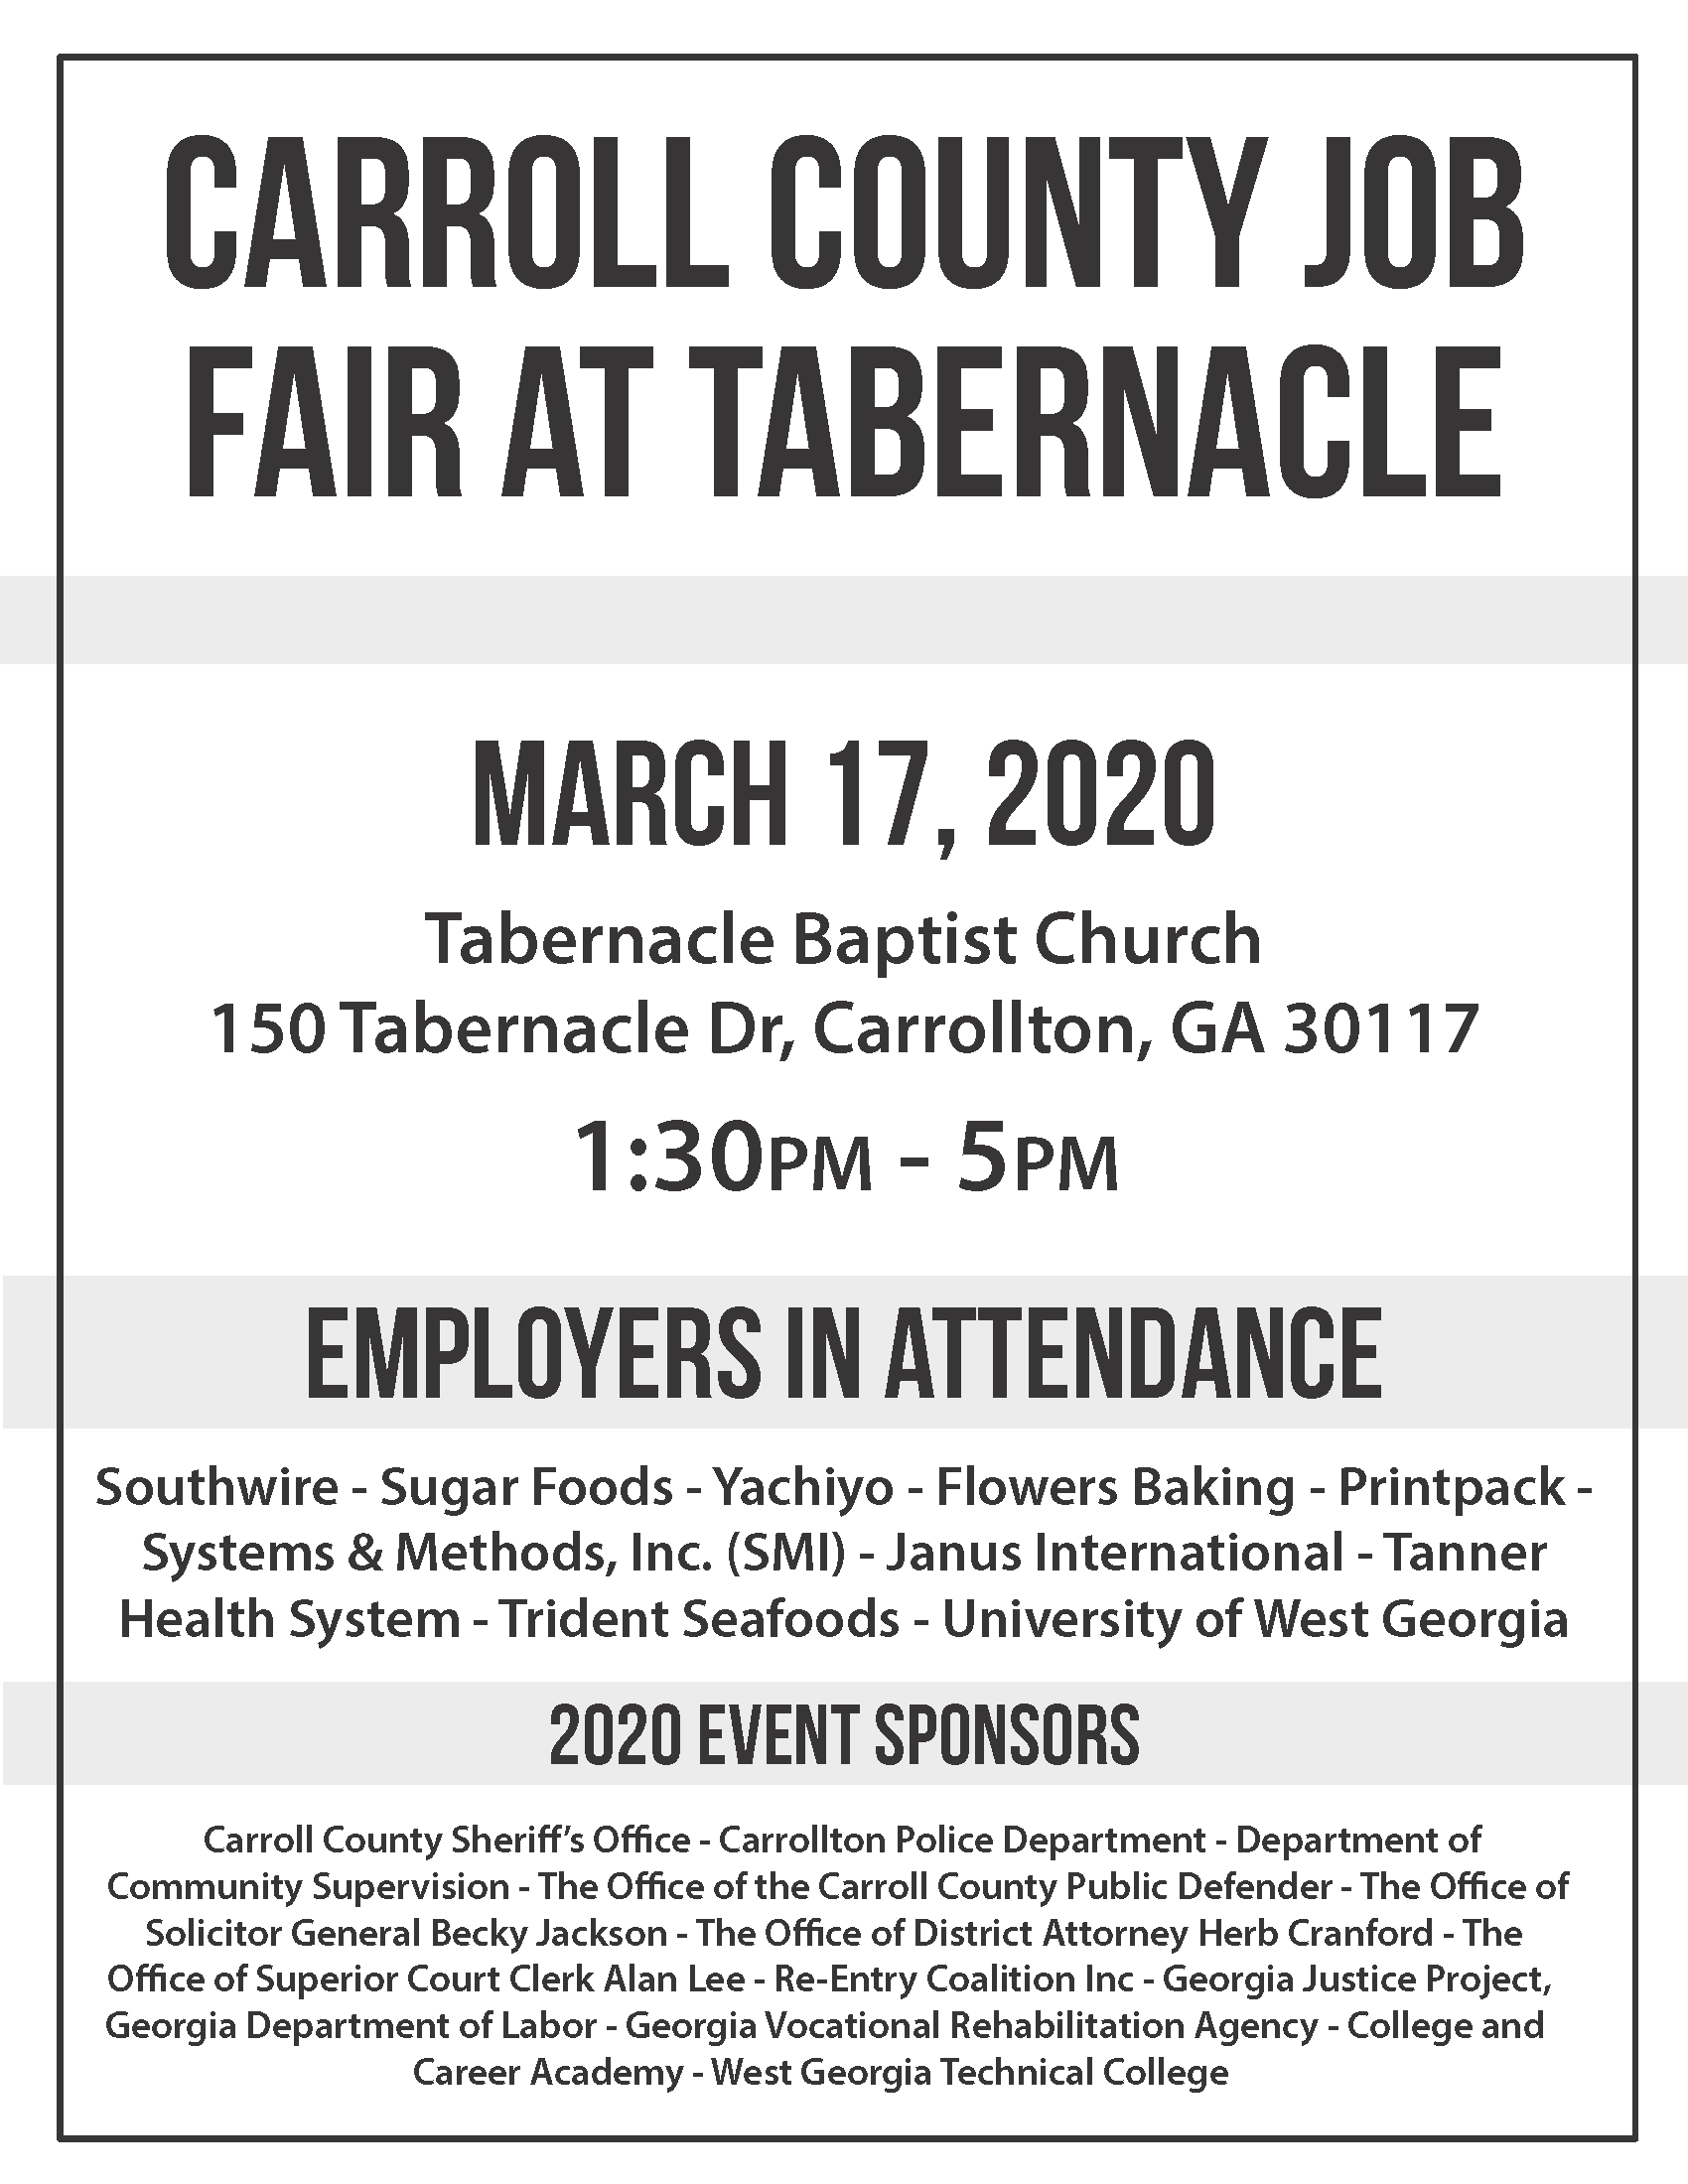 Carroll County Job Fair